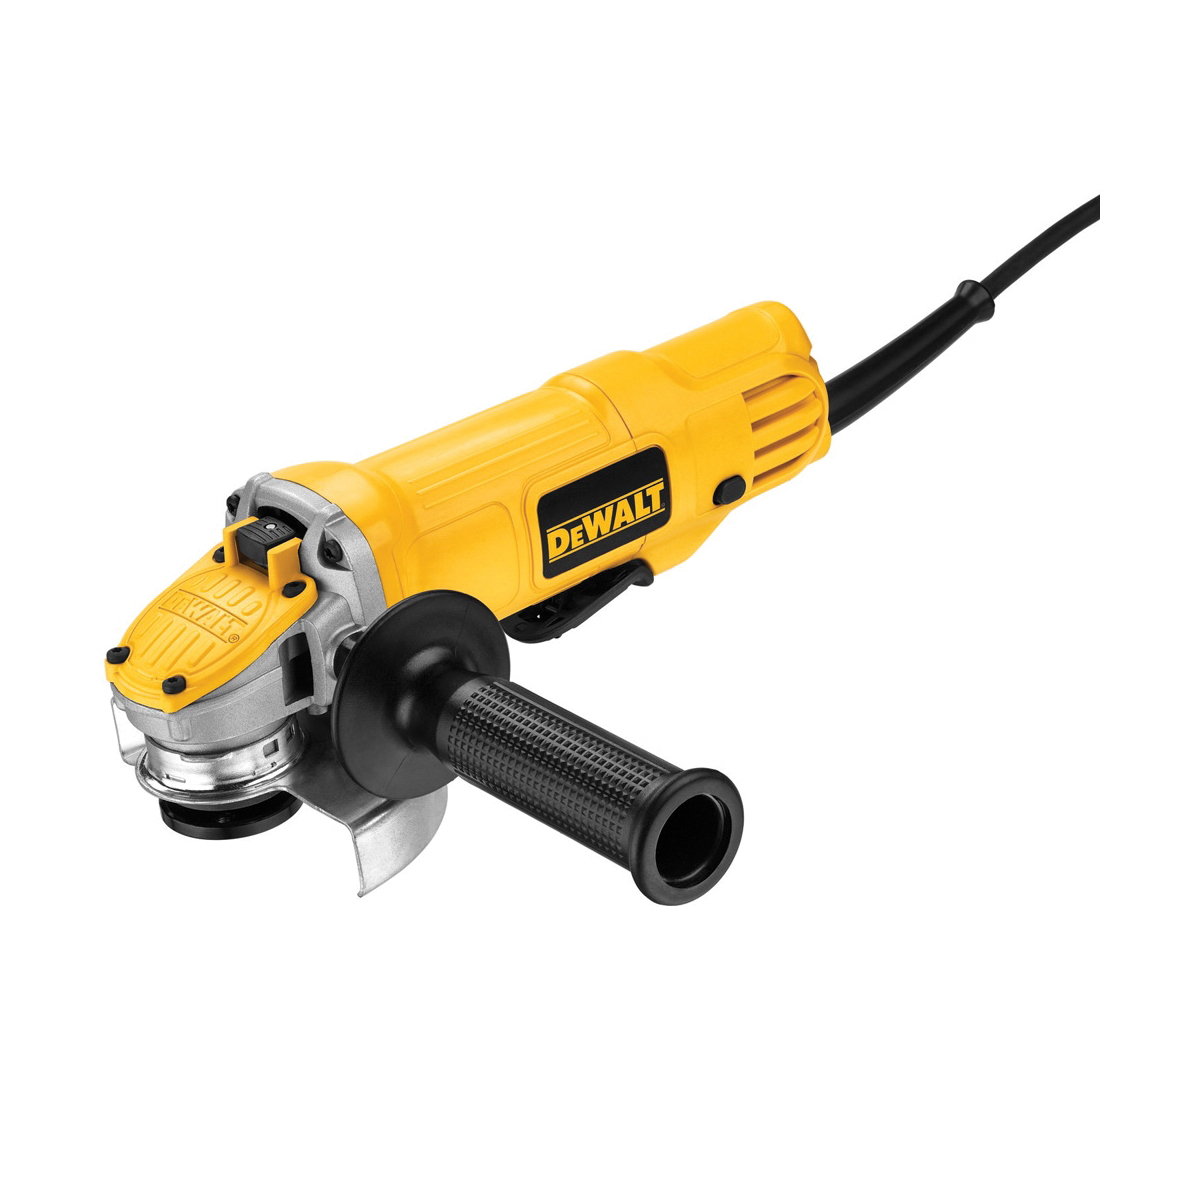 DeWALT® DWE4120 Small Angle Grinder, 4-1/2 in Dia Wheel, 5/8-11 Arbor/Shank, 120 VAC, For Wheel: Quick-Change™, Yellow, No, Lock-On Paddle Switch